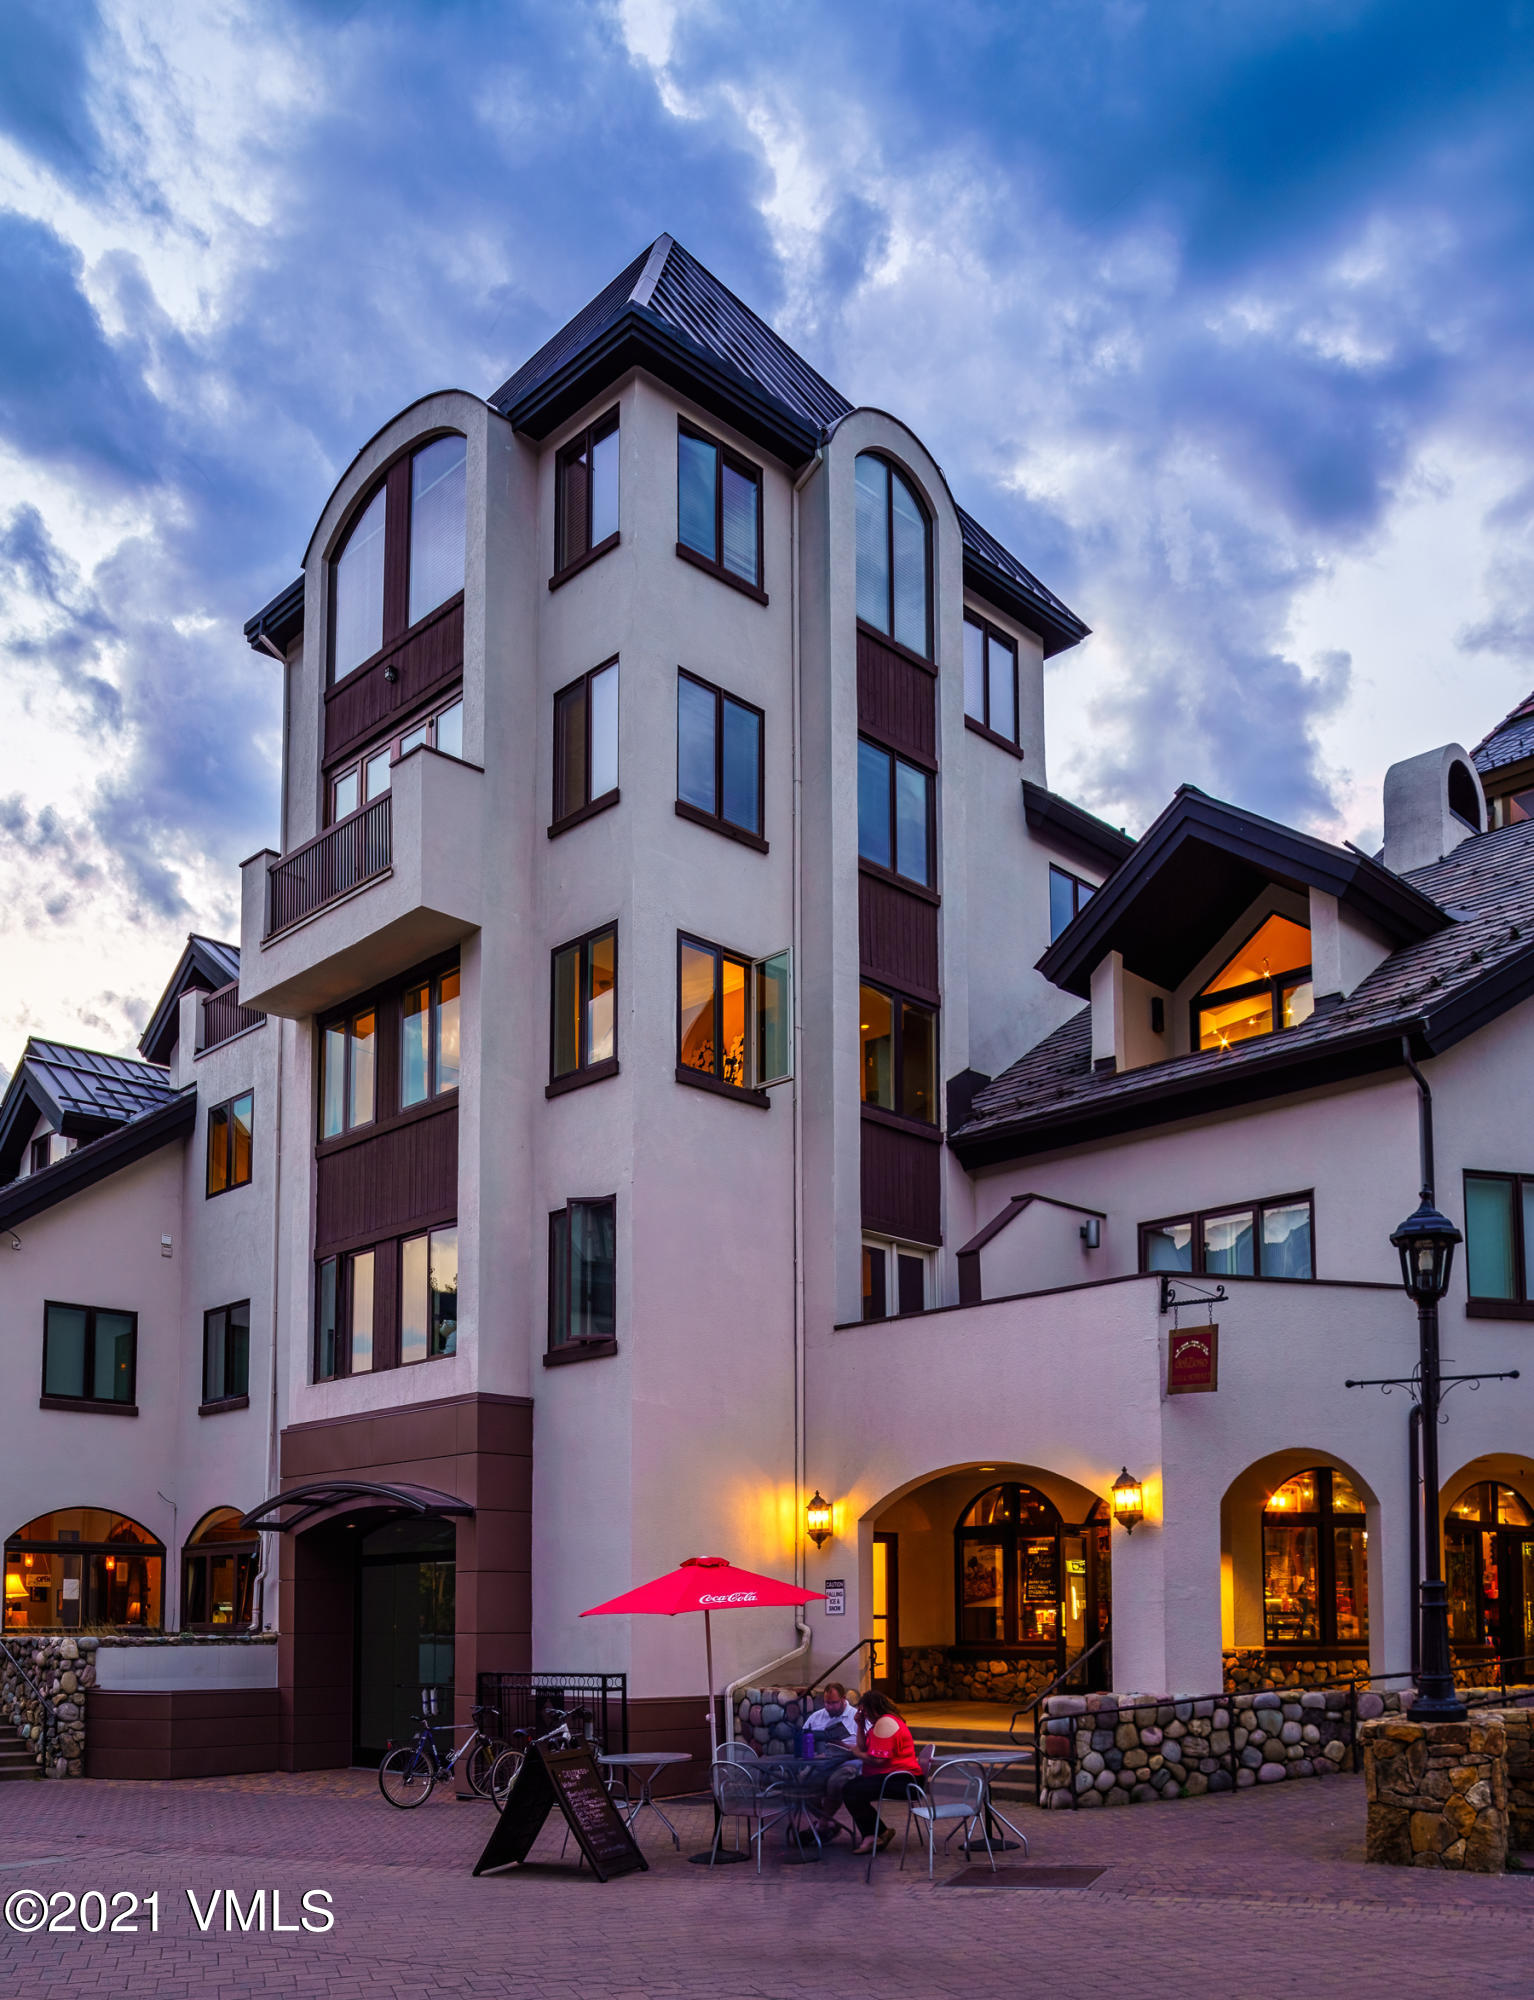 Live in the center of Vail Village and enjoy the mountain lifestyle. This move-in ready 3 bedroom condominium with mountain views  has high-grade upgrades throughout with Air Conditioning, Custom Lighting, Custom Trim and Finishes and Appliances. Vaulted Ceilings in Living/Dining and 2nd Bedroom.    Gas fireplace, Quartz Counters, Custom Built Kitchen Storage, Steam Shower, Soaking Tub and Heated Floor in main bath, all add to the luxury.  2 Ski lockers, 2 Storage Closets and 1 Heated Deeded Garage space.  Enjoy the Hotel Sebastian's outdoor heated Pool & Hot tubs, Combine this luxury condo with the Sebastian Summit Club and have Valet Parking, use of the Fitness Facility, Owner Lounge for Breakfast and Apres Ski, Discounts at  Bloom Spa and  Leonora Restaurant and Storage of Skis at the Base Camp by Gondola 1 ski lift.   Minutes to Vail's Boutique Shops, Fine Dining, Music, and Mountain Lifestyle.A perfect 3 Bedroom Condo you can move right in to and start enjoying the Vail lifestyle the moment you call it your home in Vail.   https://villageinnplaza305.relahq.com/?mls